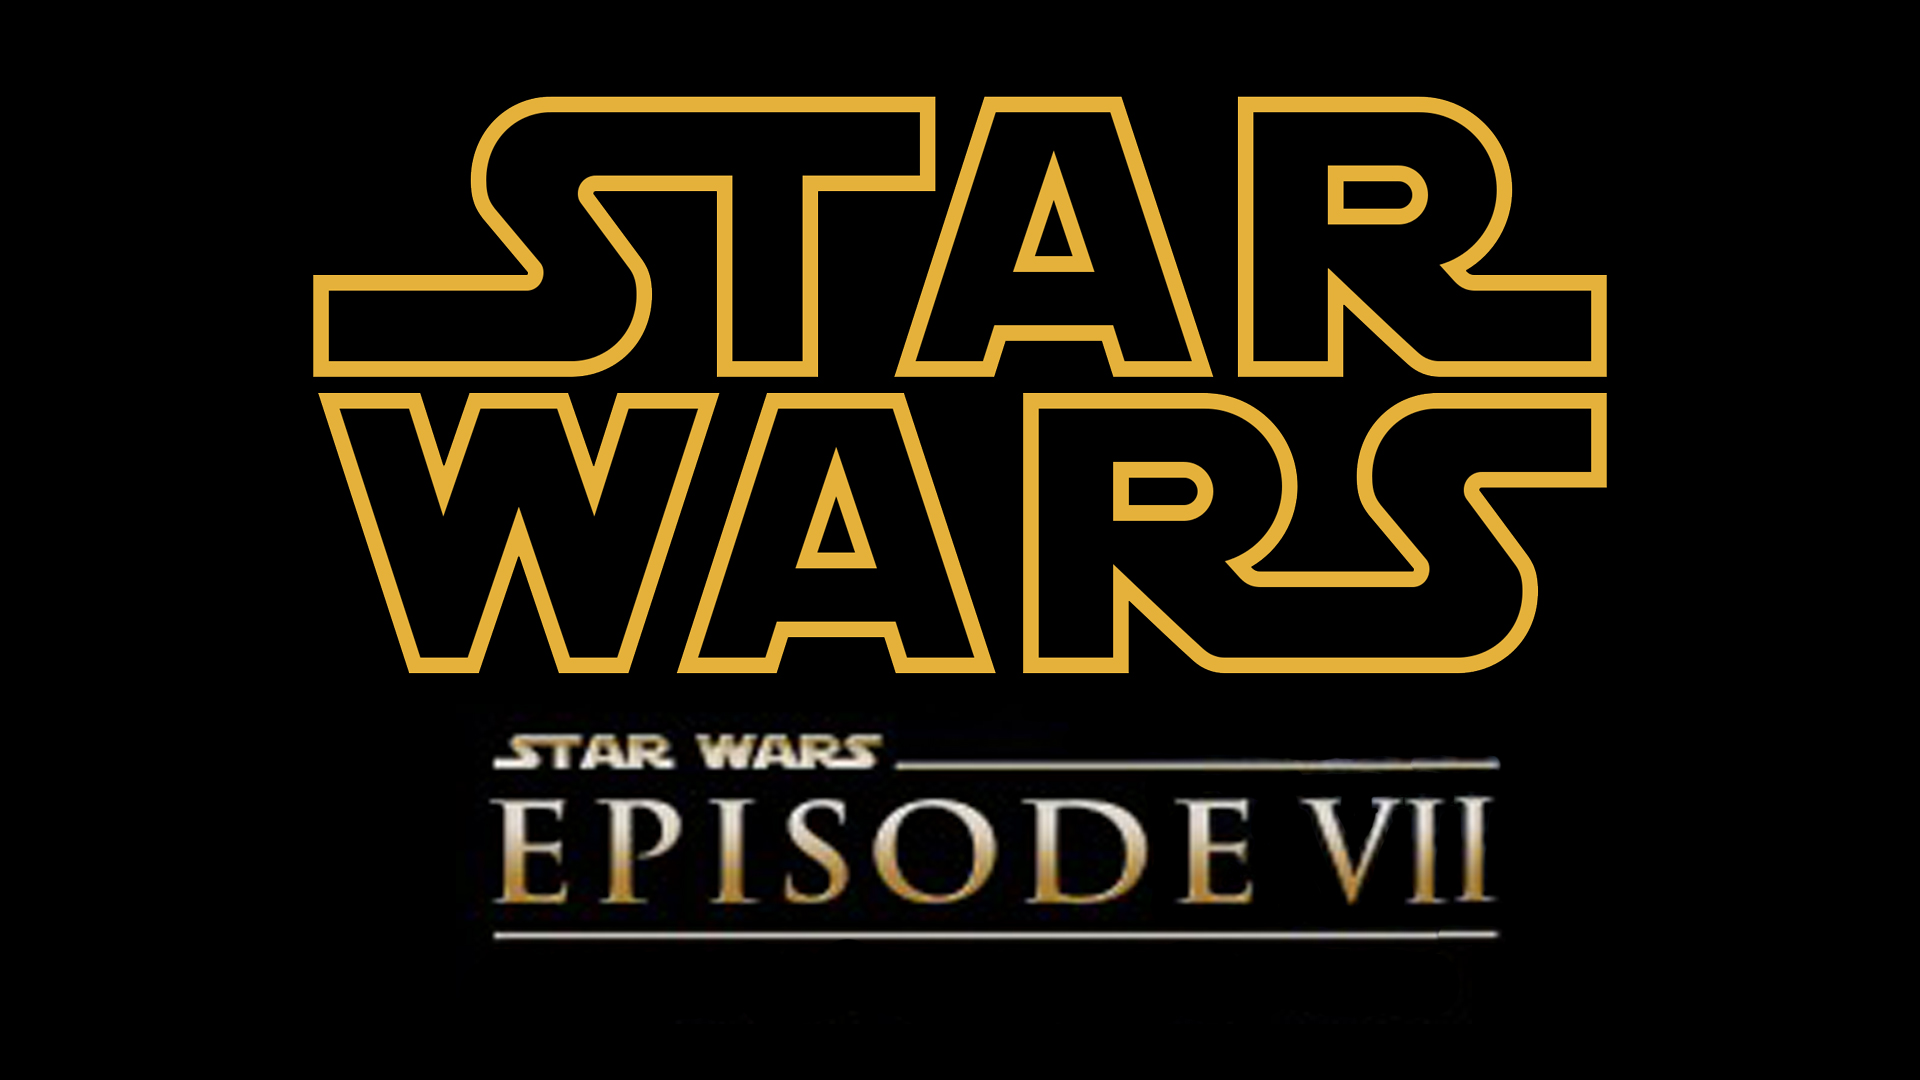 Star Wars Episode VII Release Date Officially Announced Could Unknown Actress Be The Star of the Upcoming Star Wars Sequel?